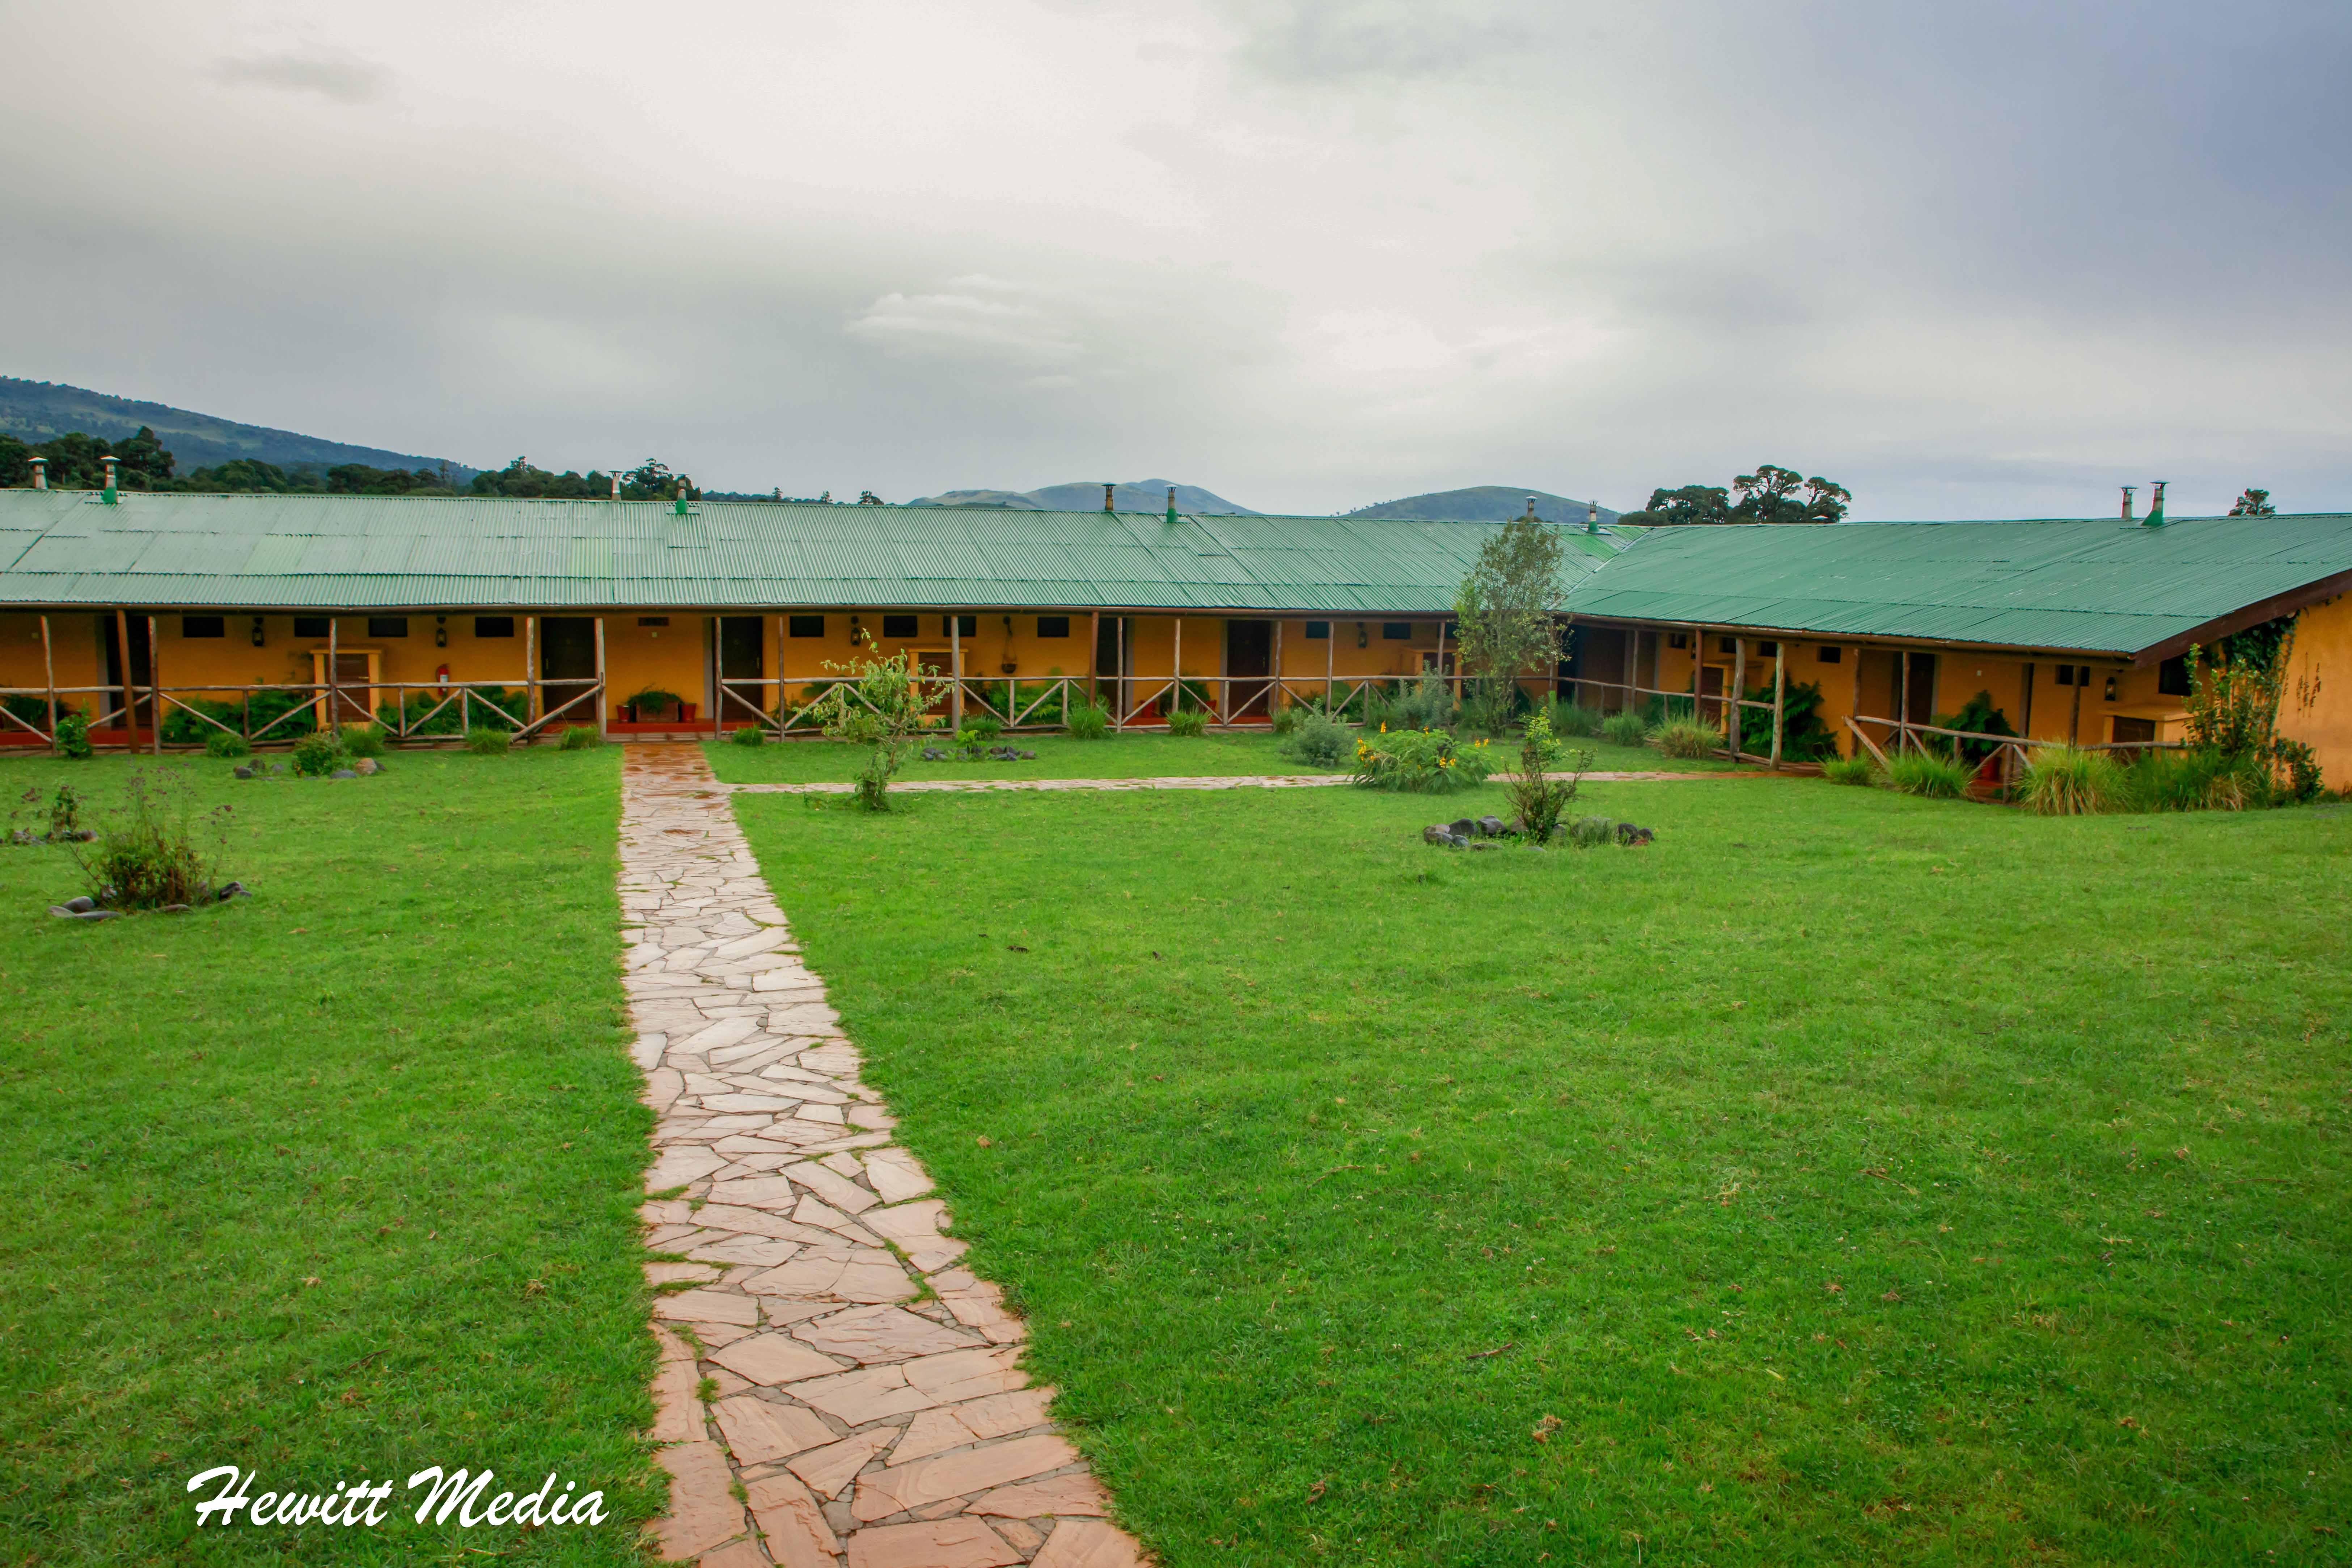 The Rhino Lodge outside of the Ngorongoro Crater